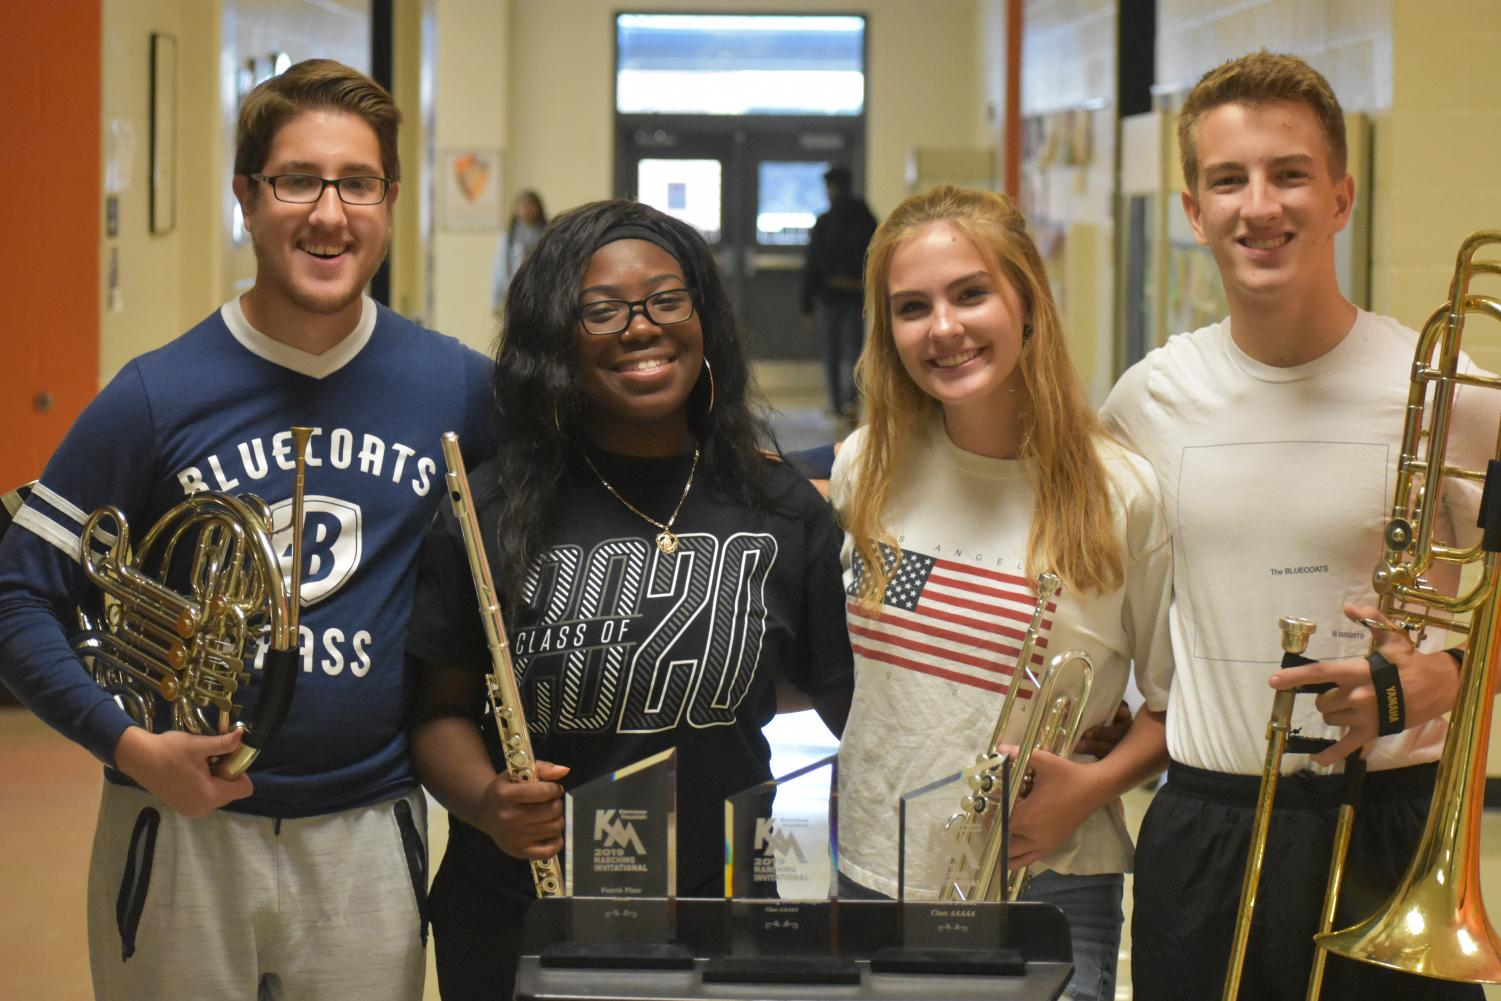 """Drum majors Reese McGee, Ola Otis, Lillian Southall and Jonas Ventresca stand behind their awards earned at Kennesaw Mountain Marching Invitational. The students earned awards including """"Fourth Place Overall"""", """"First Place Class AAAAA"""", and """"Outstanding Drum Major""""."""